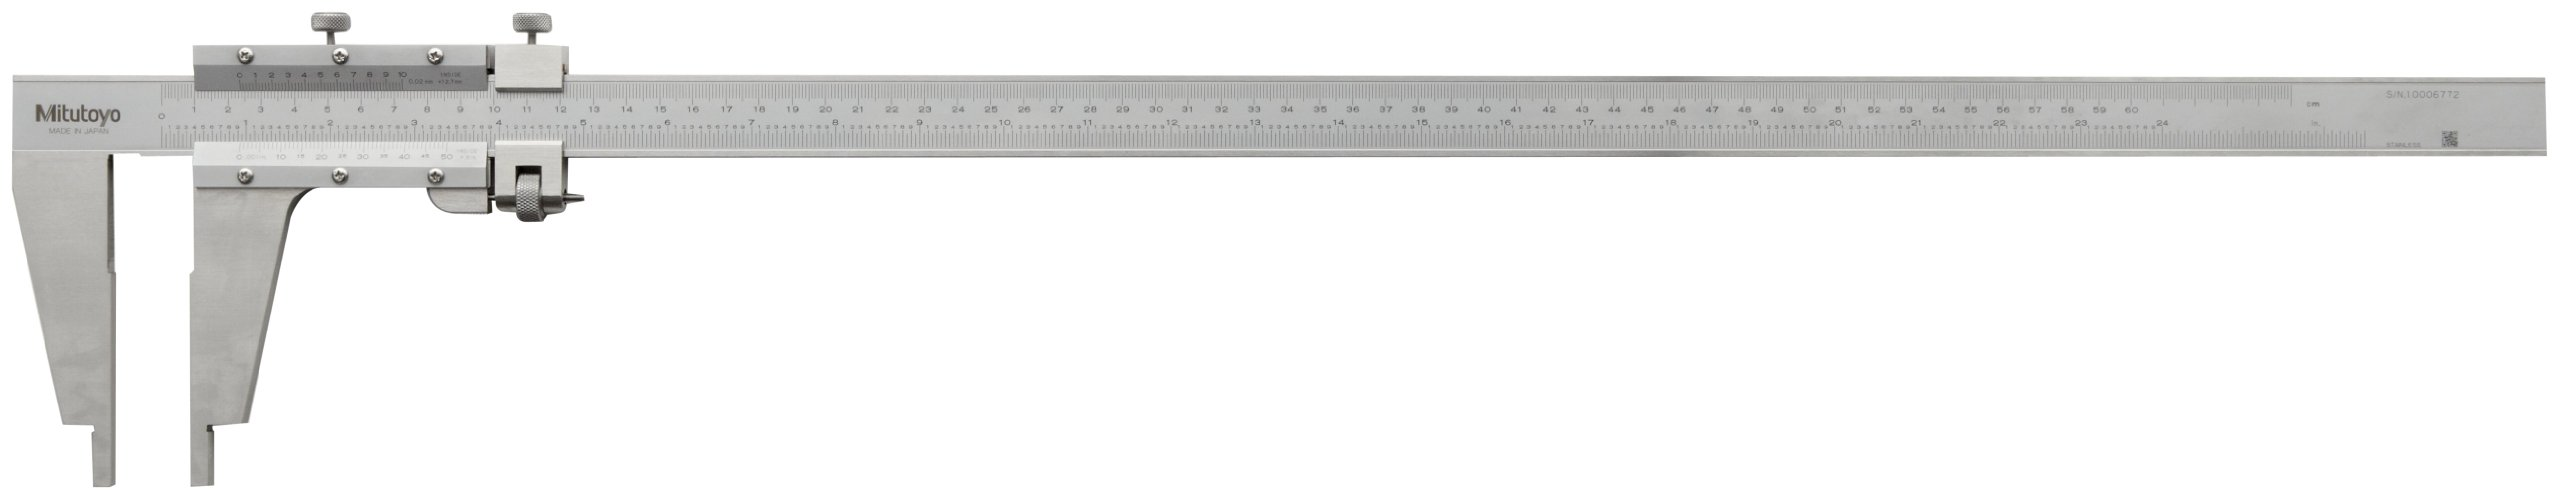 Mitutoyo 160-103 Vernier Caliper, Stainless Steel, Nib Style Jaw, 0-24'' Range, +/-0.002'' Accuracy, 0.001'' Resolution